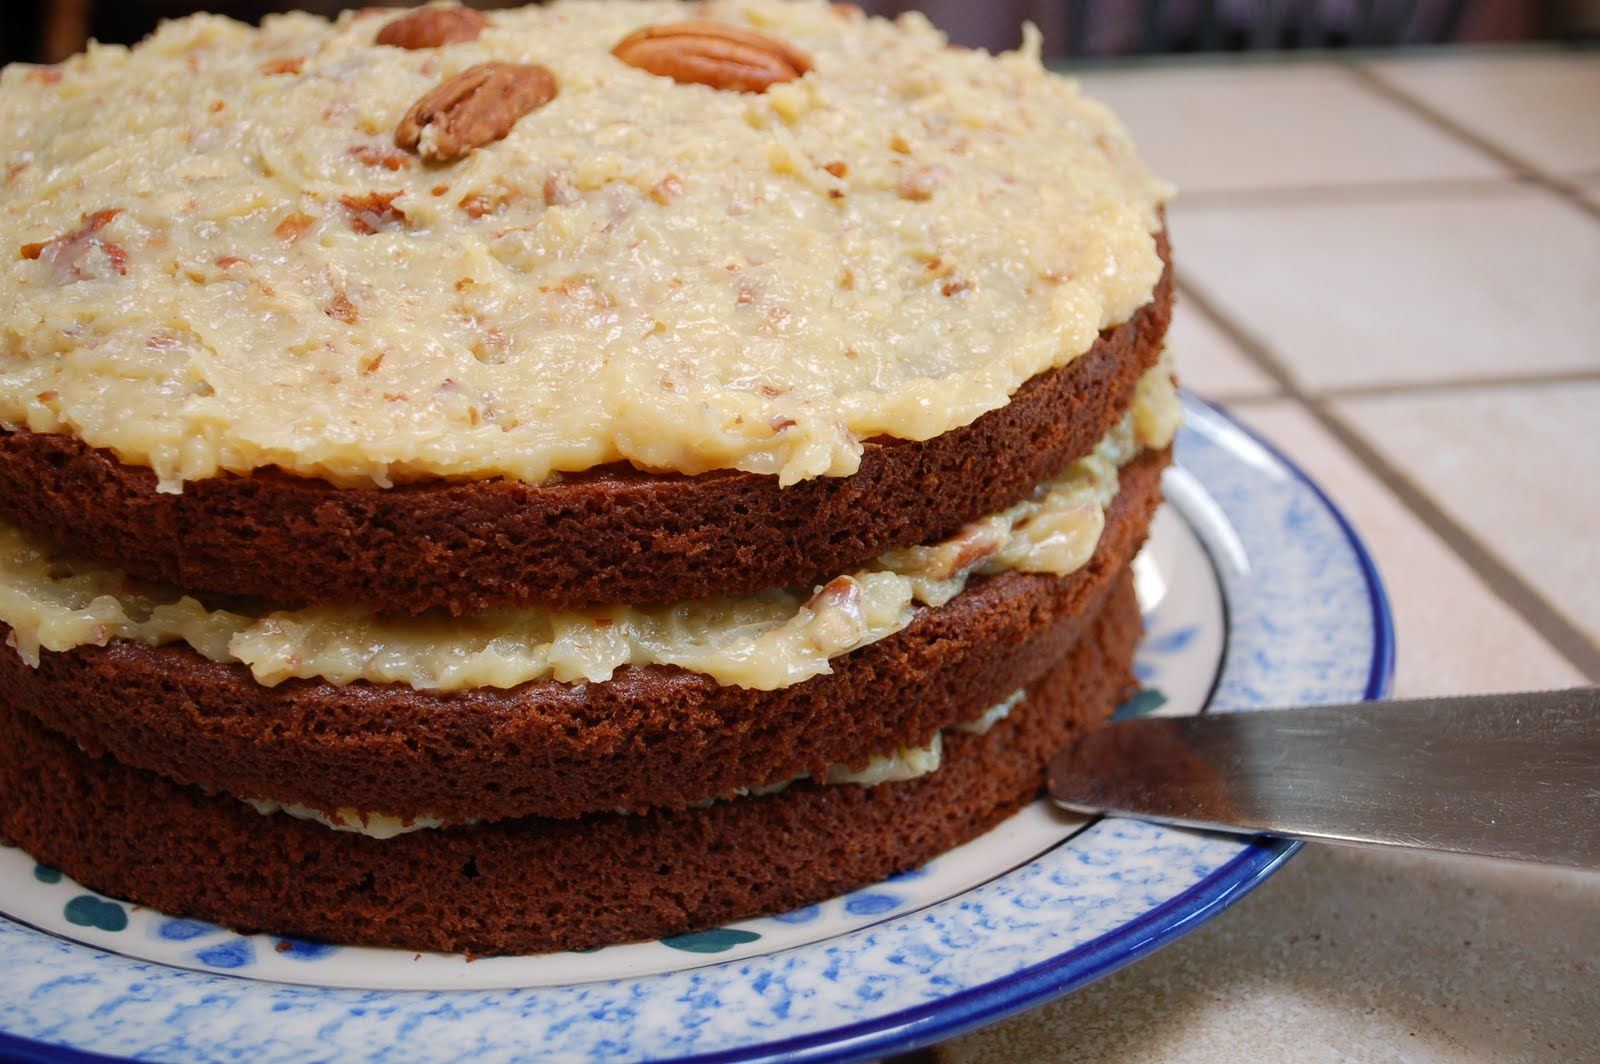 The Spice Garden: German Chocolate Cake and Birthday Wishes